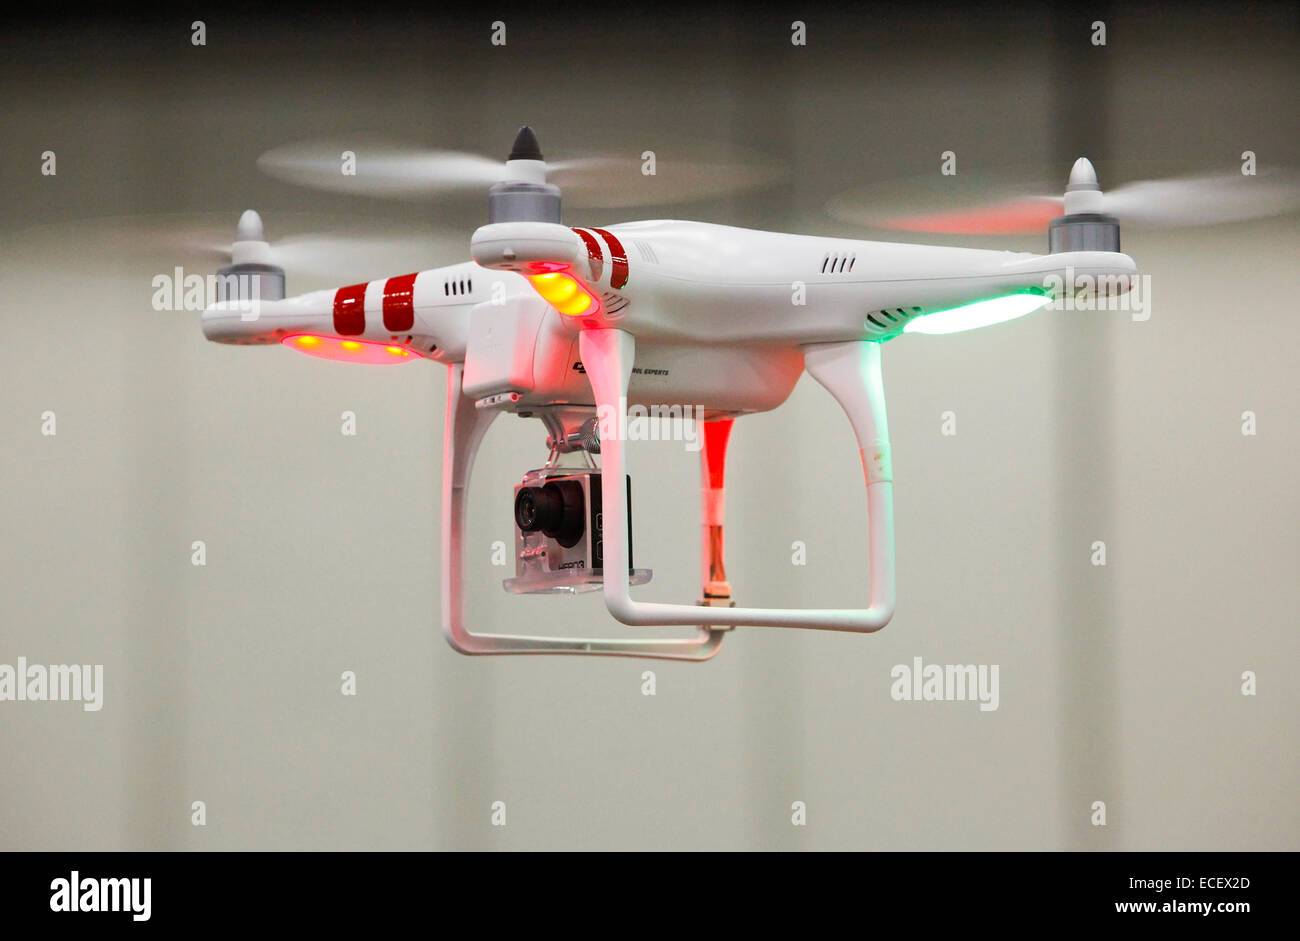 Detroit, Michigan - An unmanned aerial vehicle (drone), equipped with a camera. - Stock Image